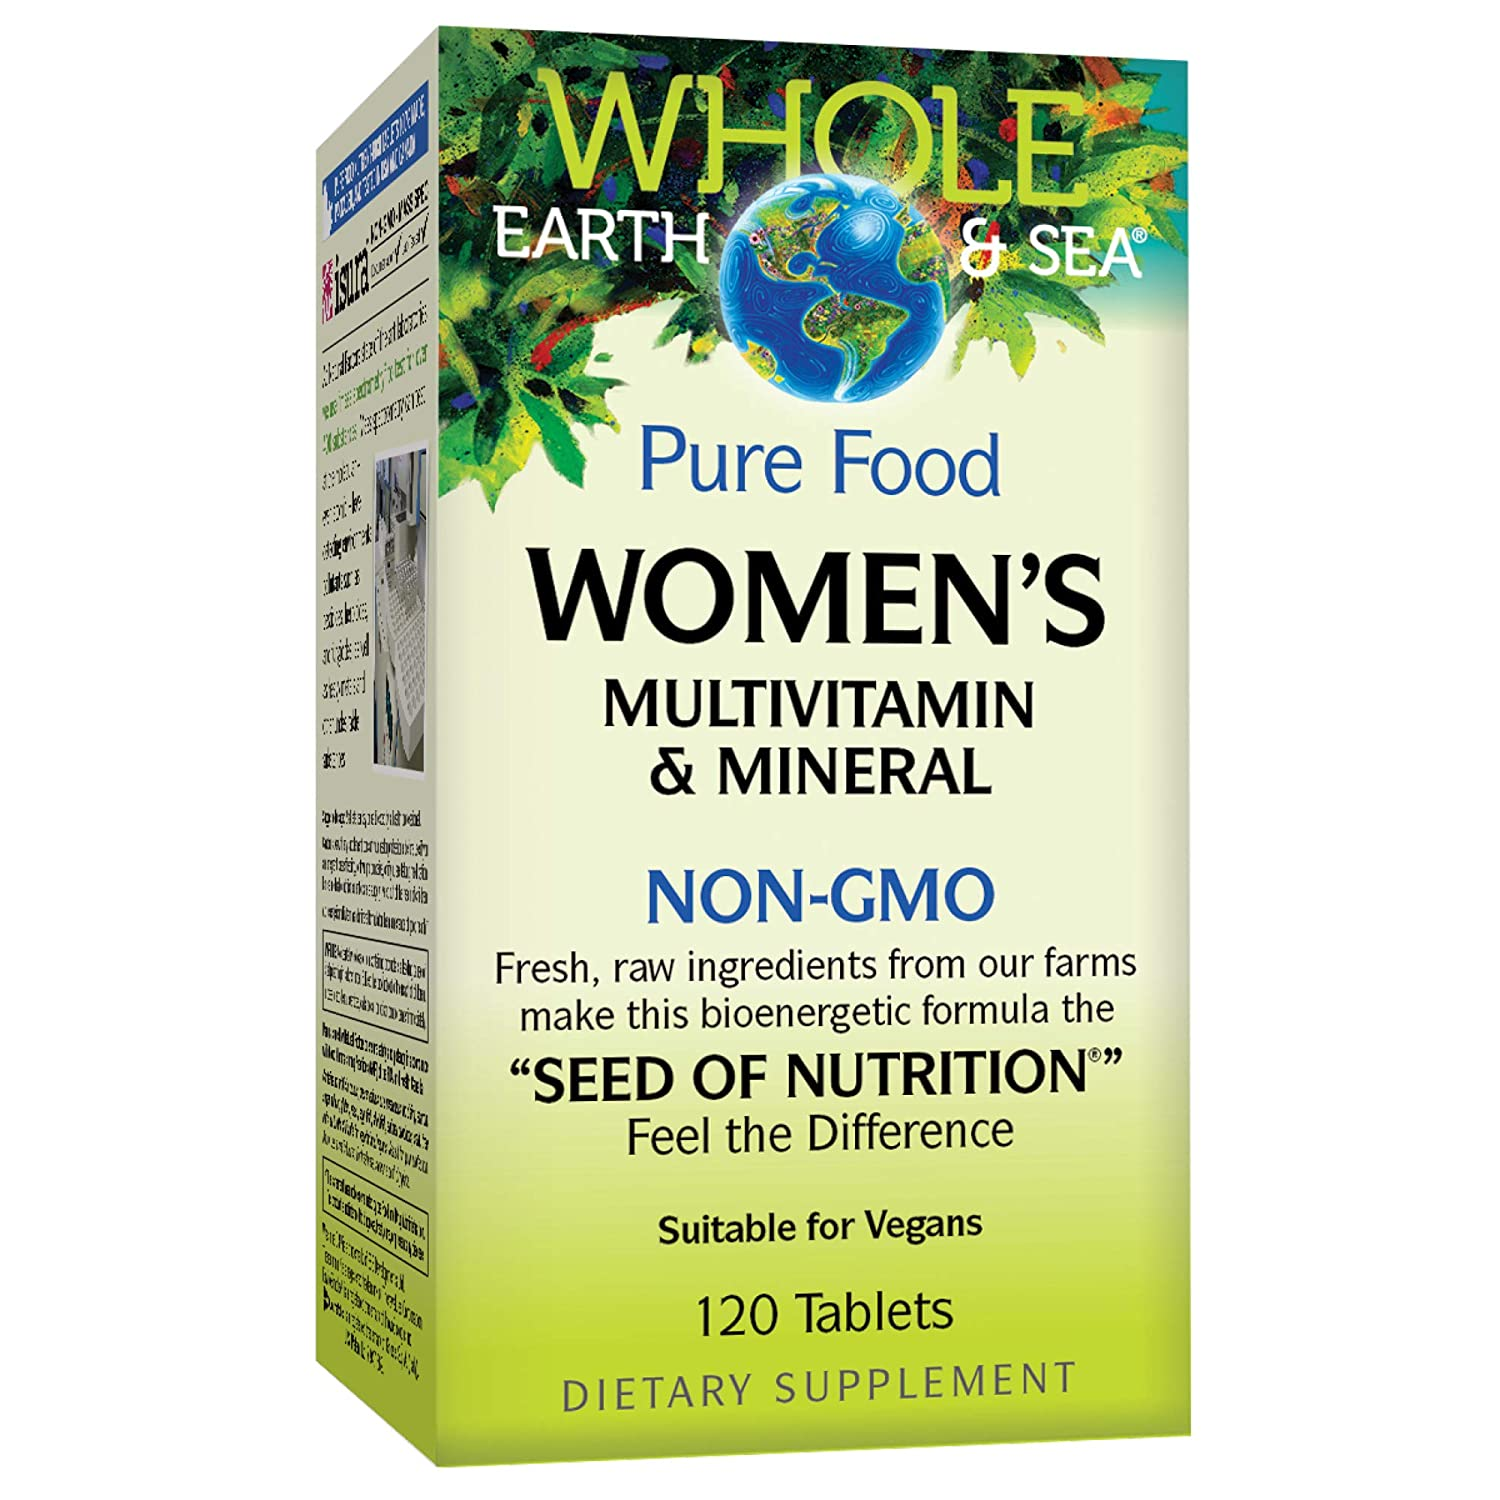 Whole Earth Sea from Natural Factors, Women s Multivitamin Mineral, Whole Food Supplement, Vegan and Gluten Free, 120 Tablets 60 Servings